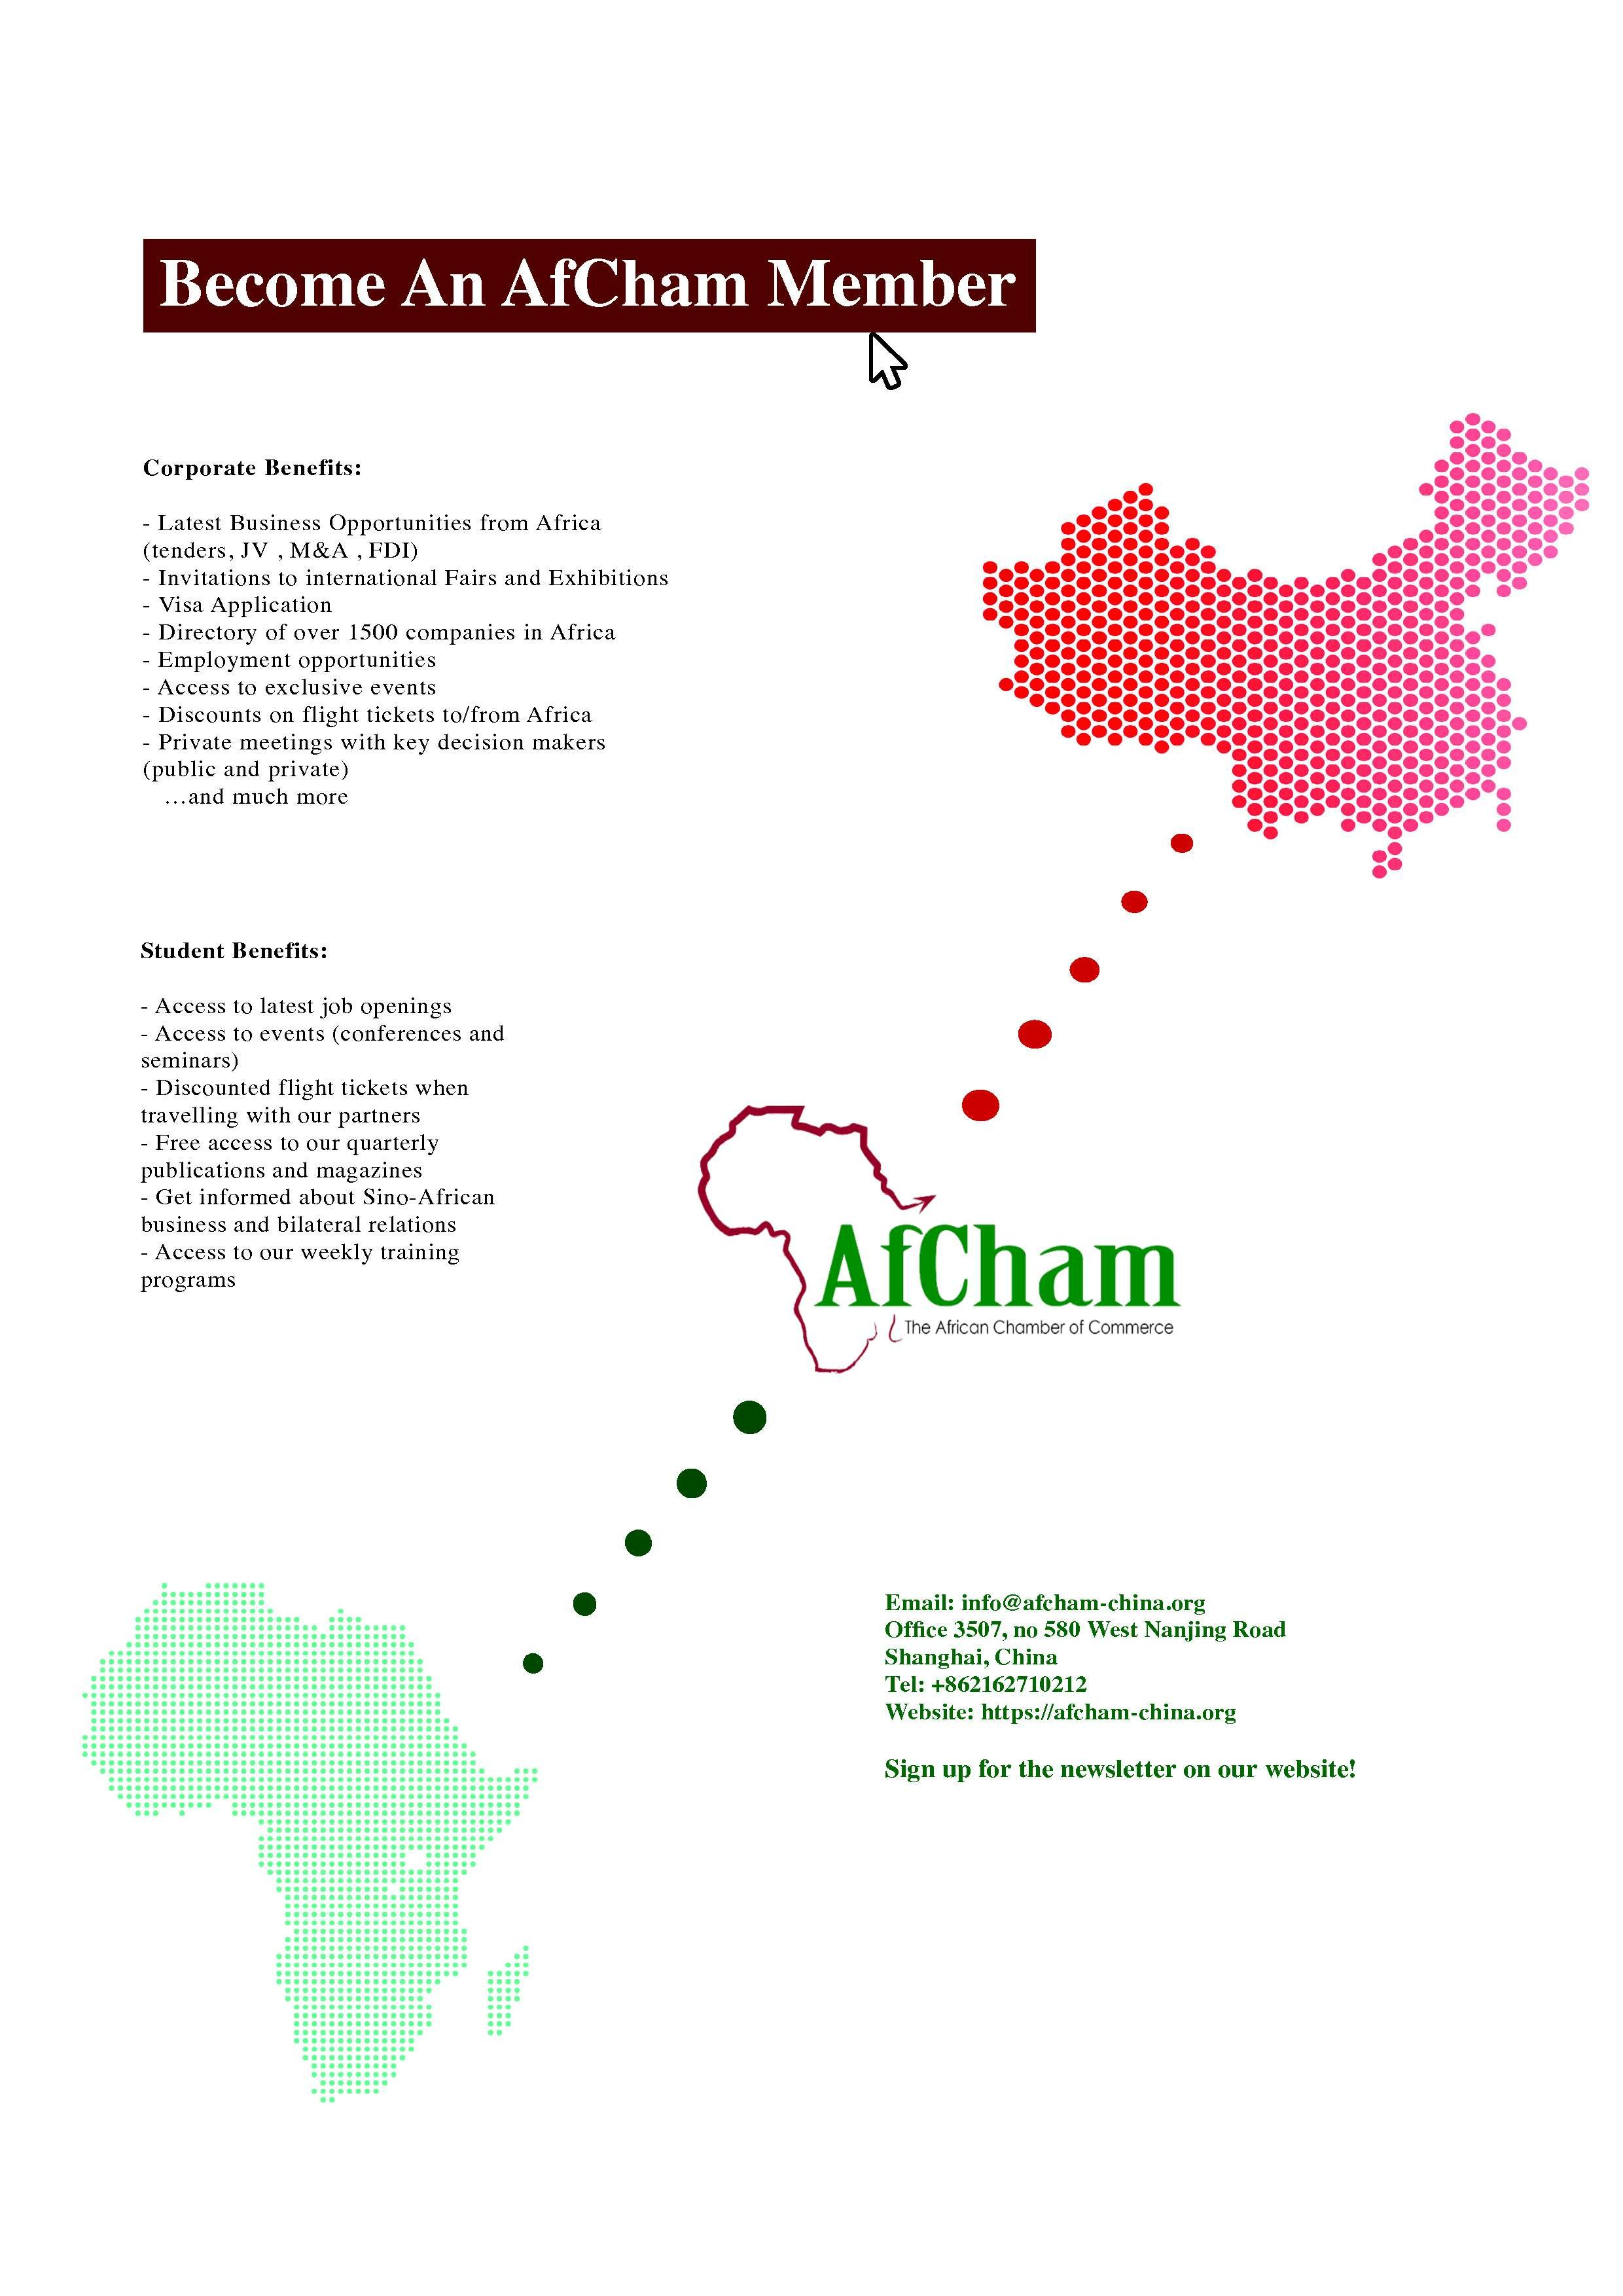 Edition March19 – AFCHAM | The African Chamber of Commerce in China